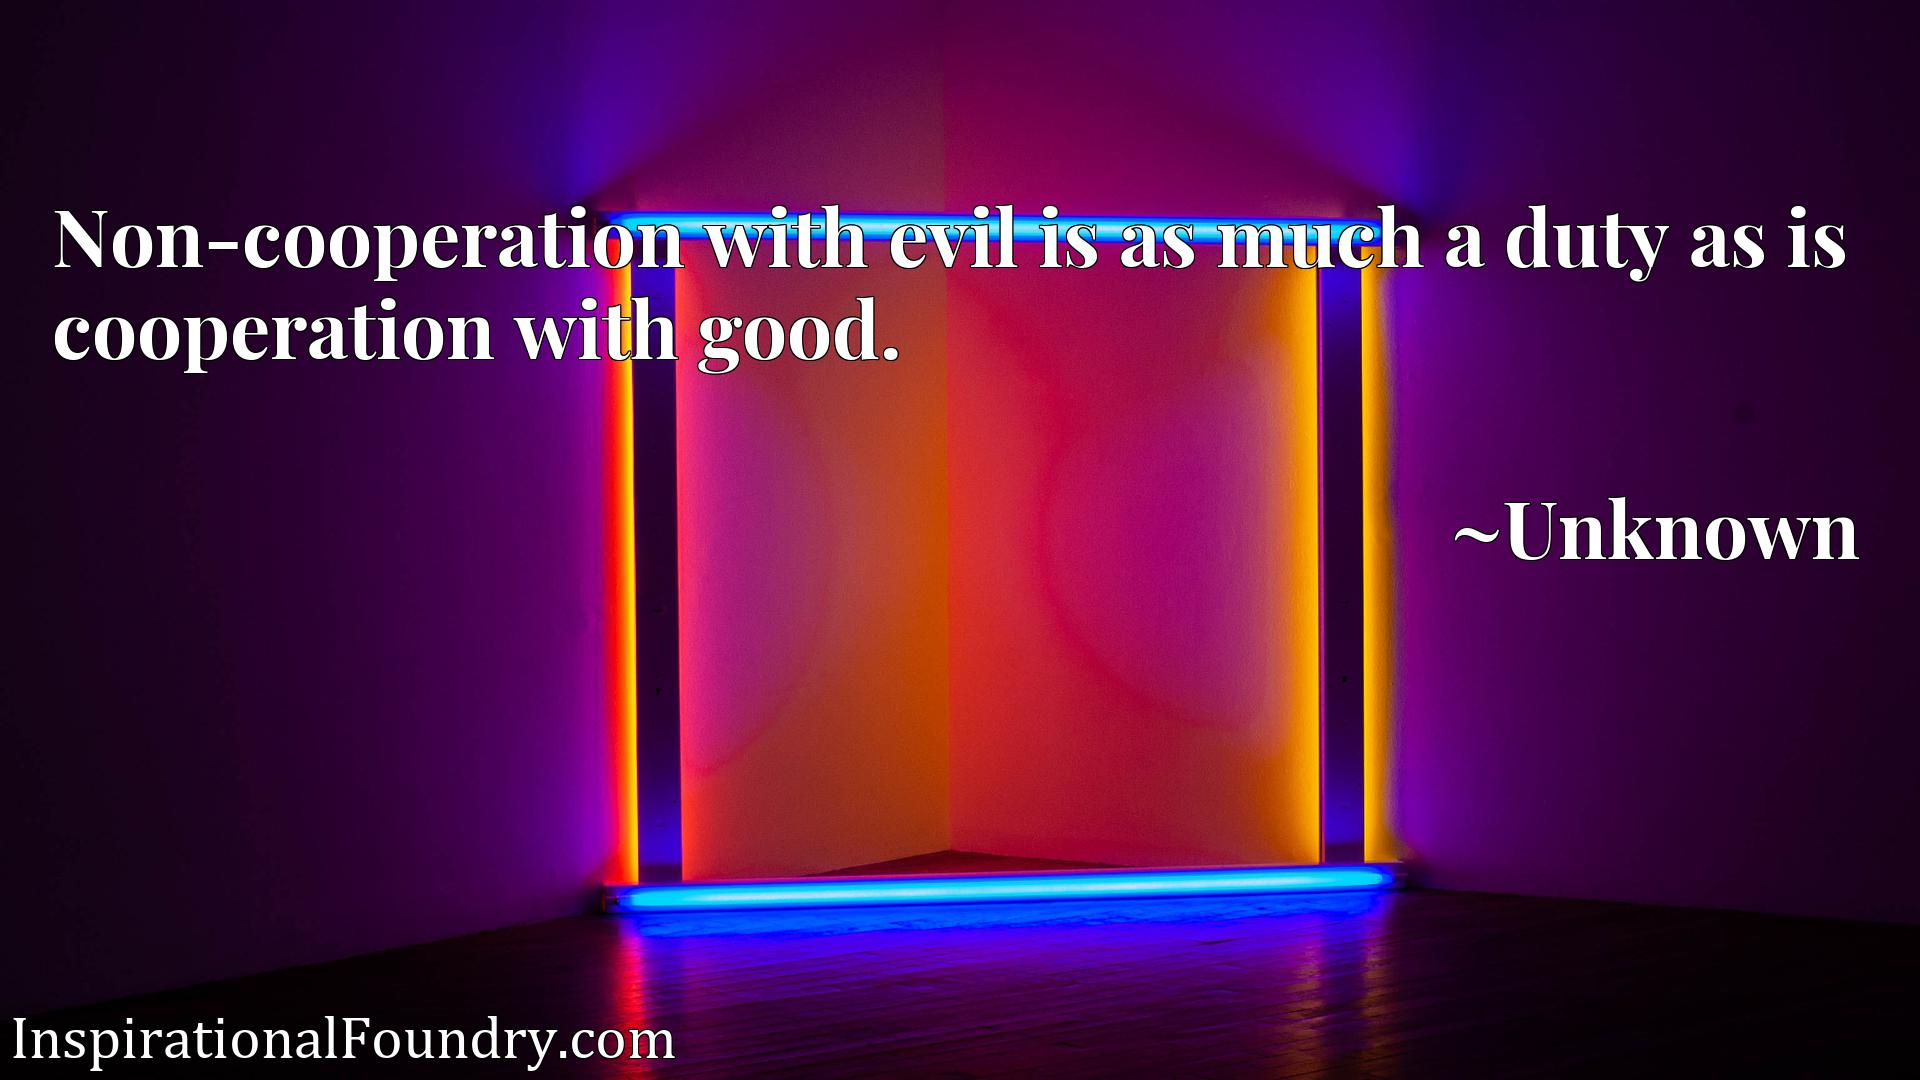 Non-cooperation with evil is as much a duty as is cooperation with good.